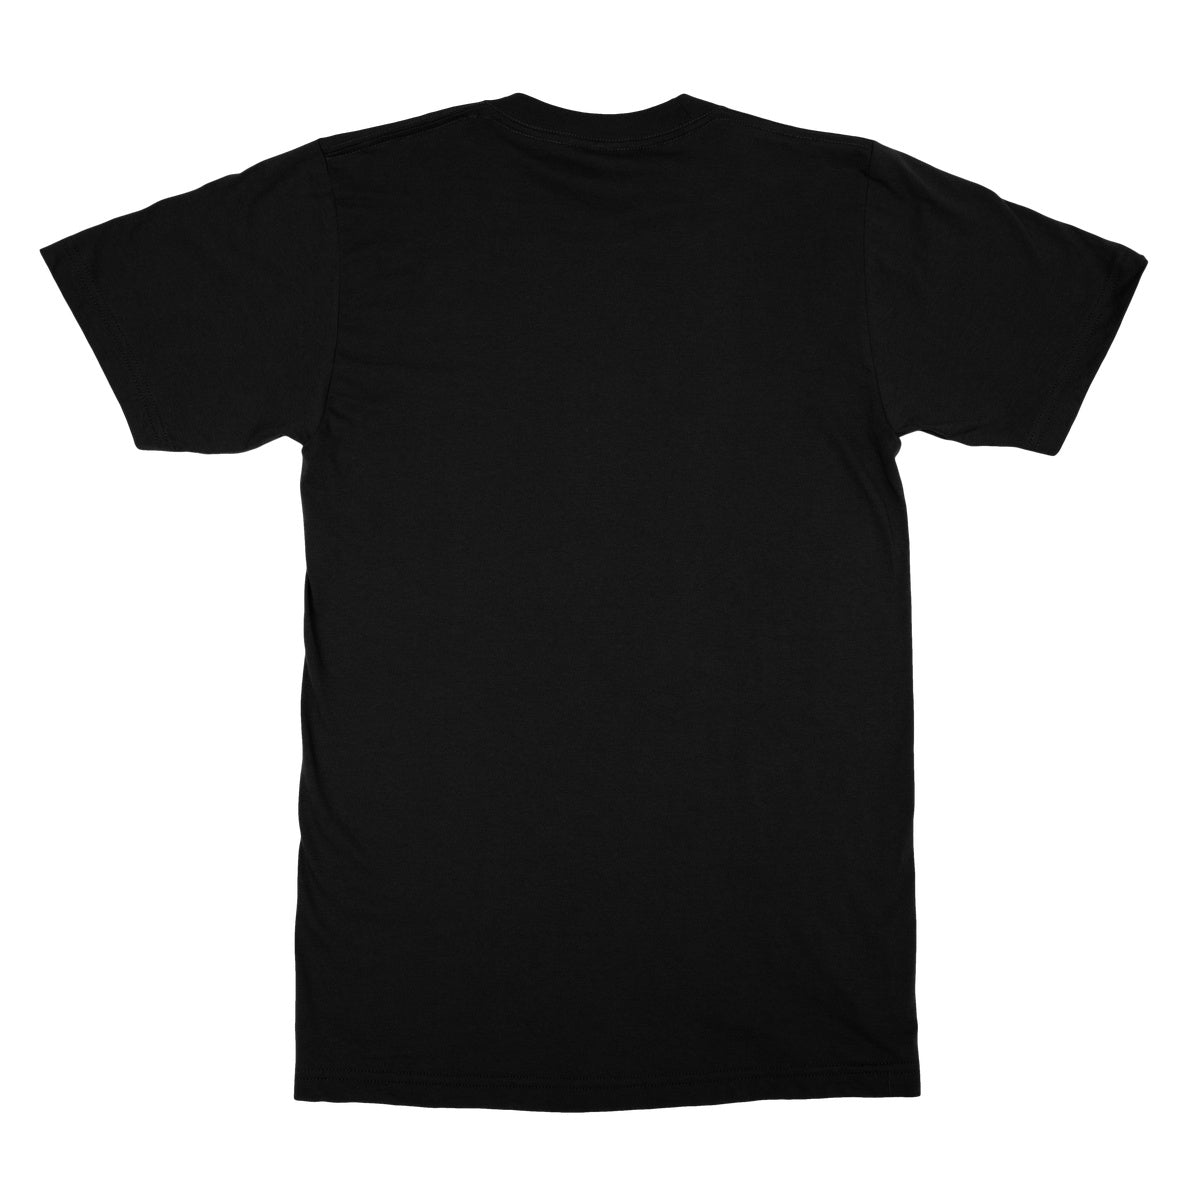 CxE Good Bros Softstyle T-Shirt